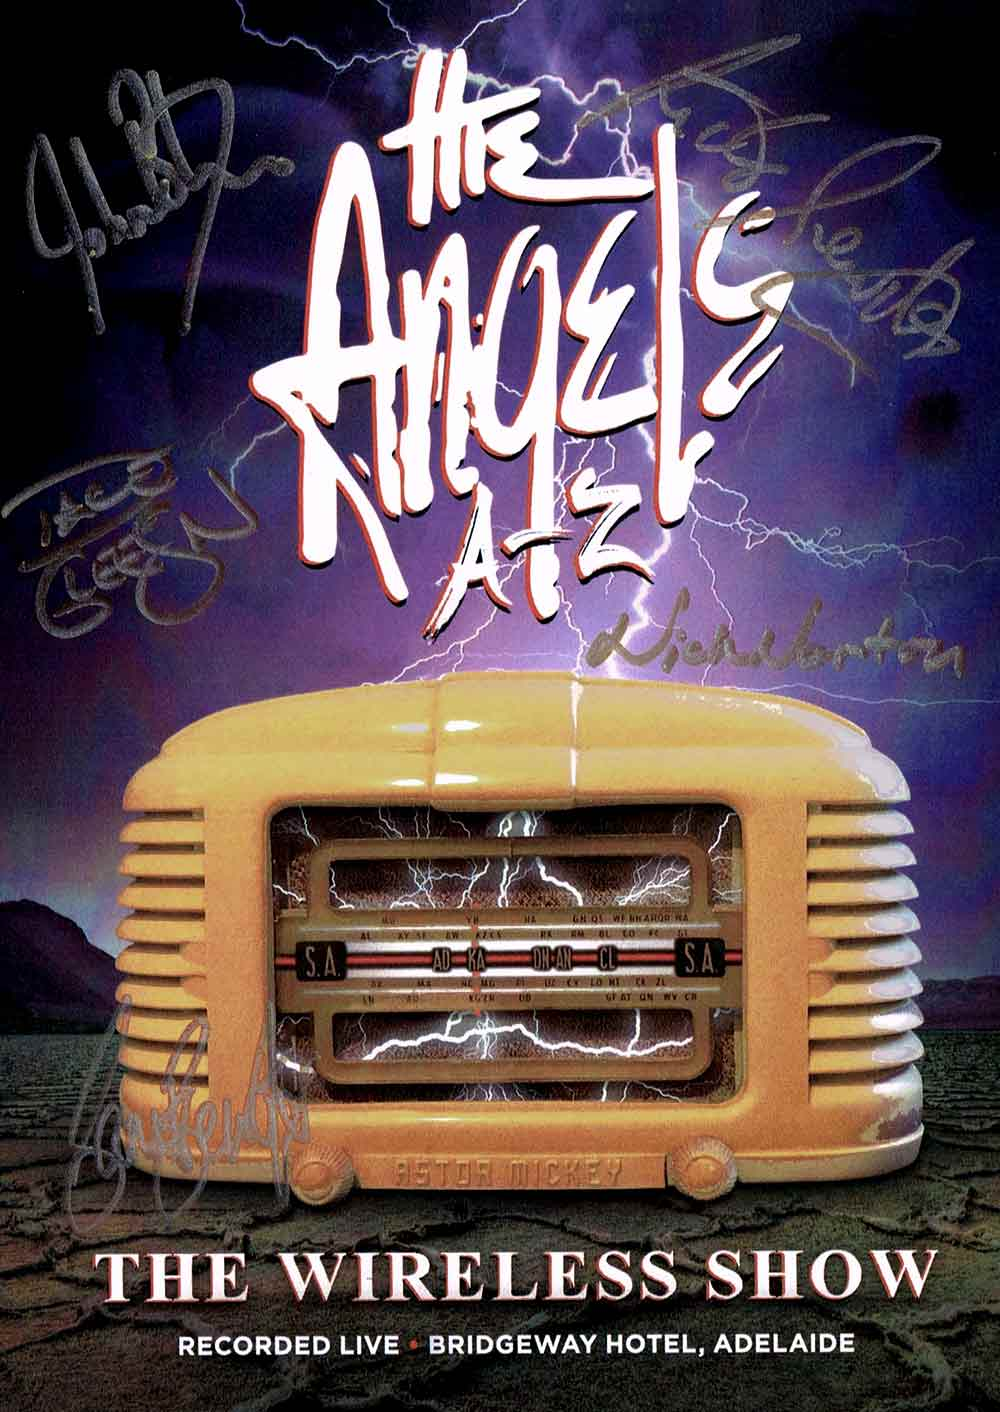 The Wireless Show – DVD <br/> Live From The Bridgeway Hotel <br/>Signed Copy – The Angels